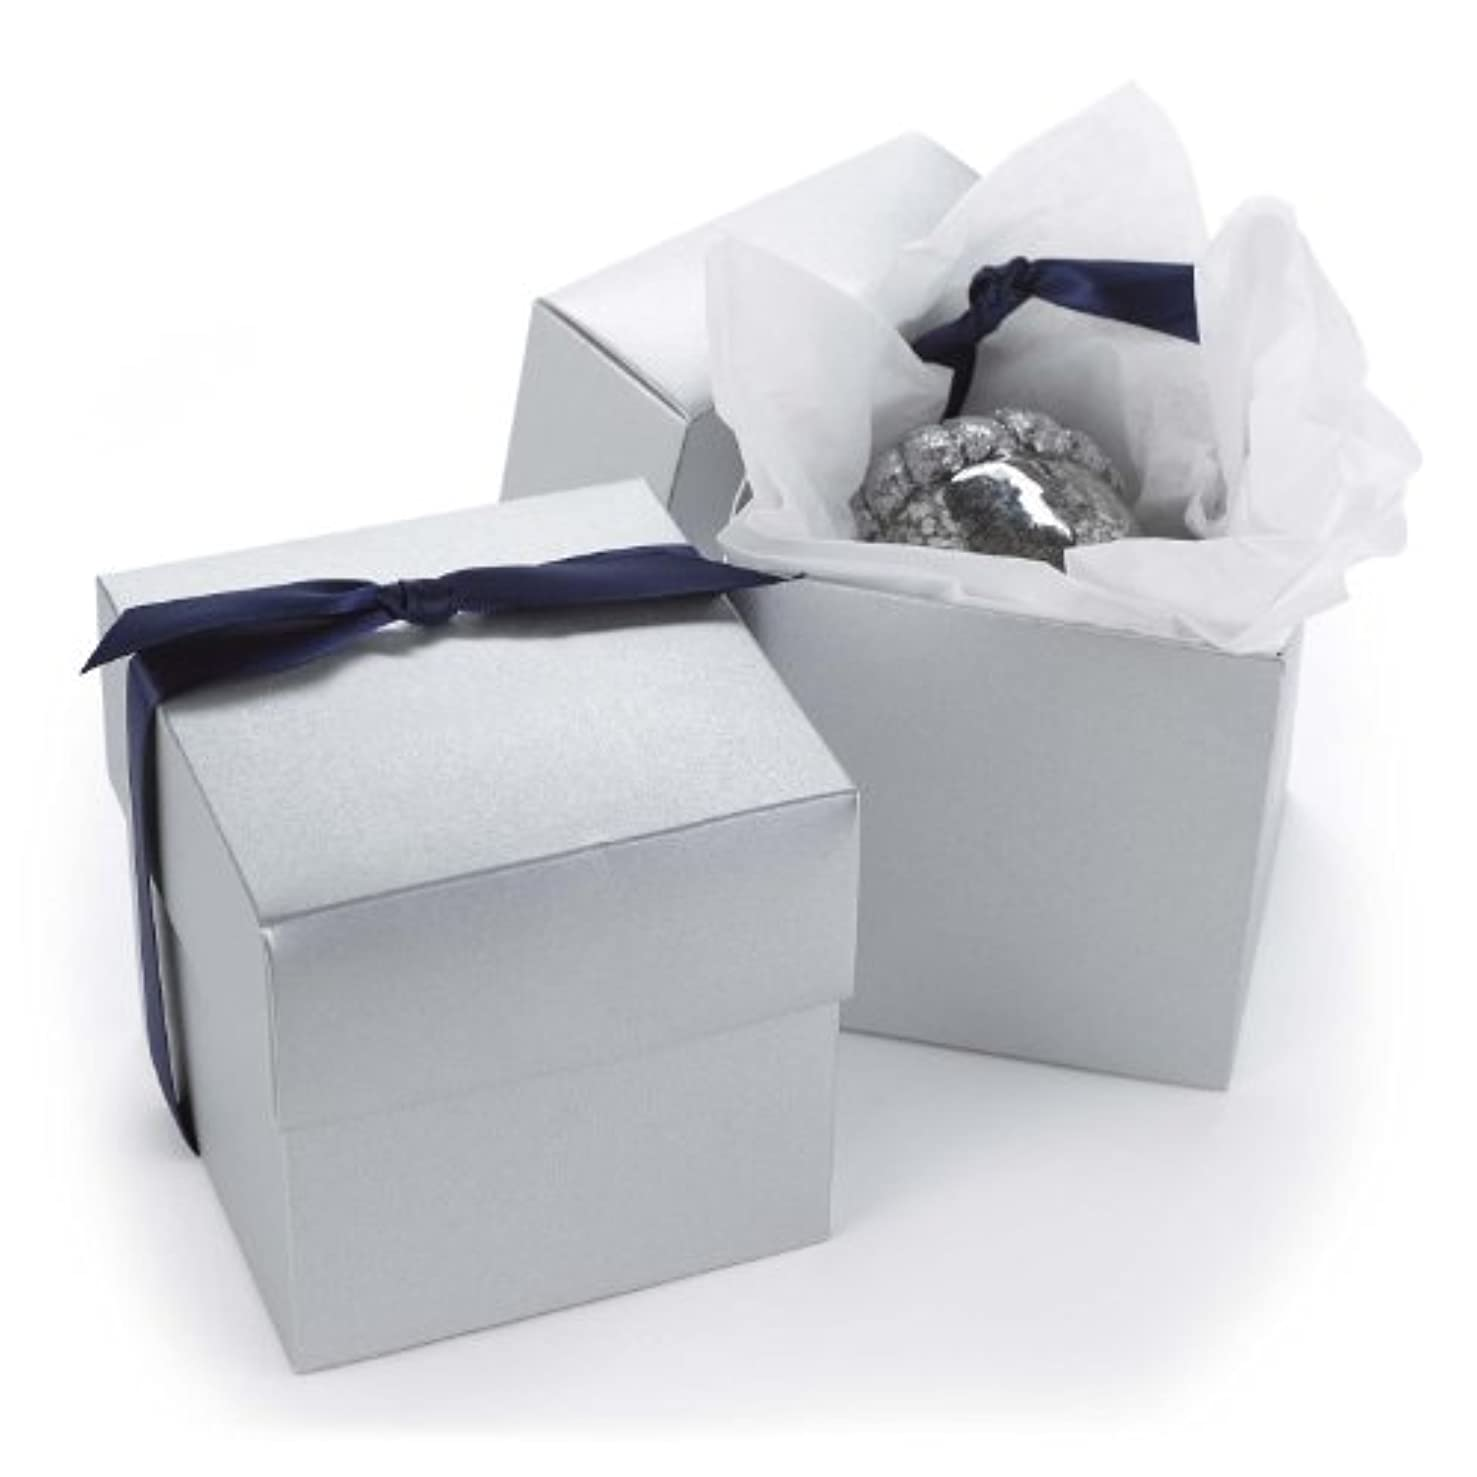 Hortense B. Hewitt 2-Piece Cup Cake Boxes, Silver Shimmer, Set of 25